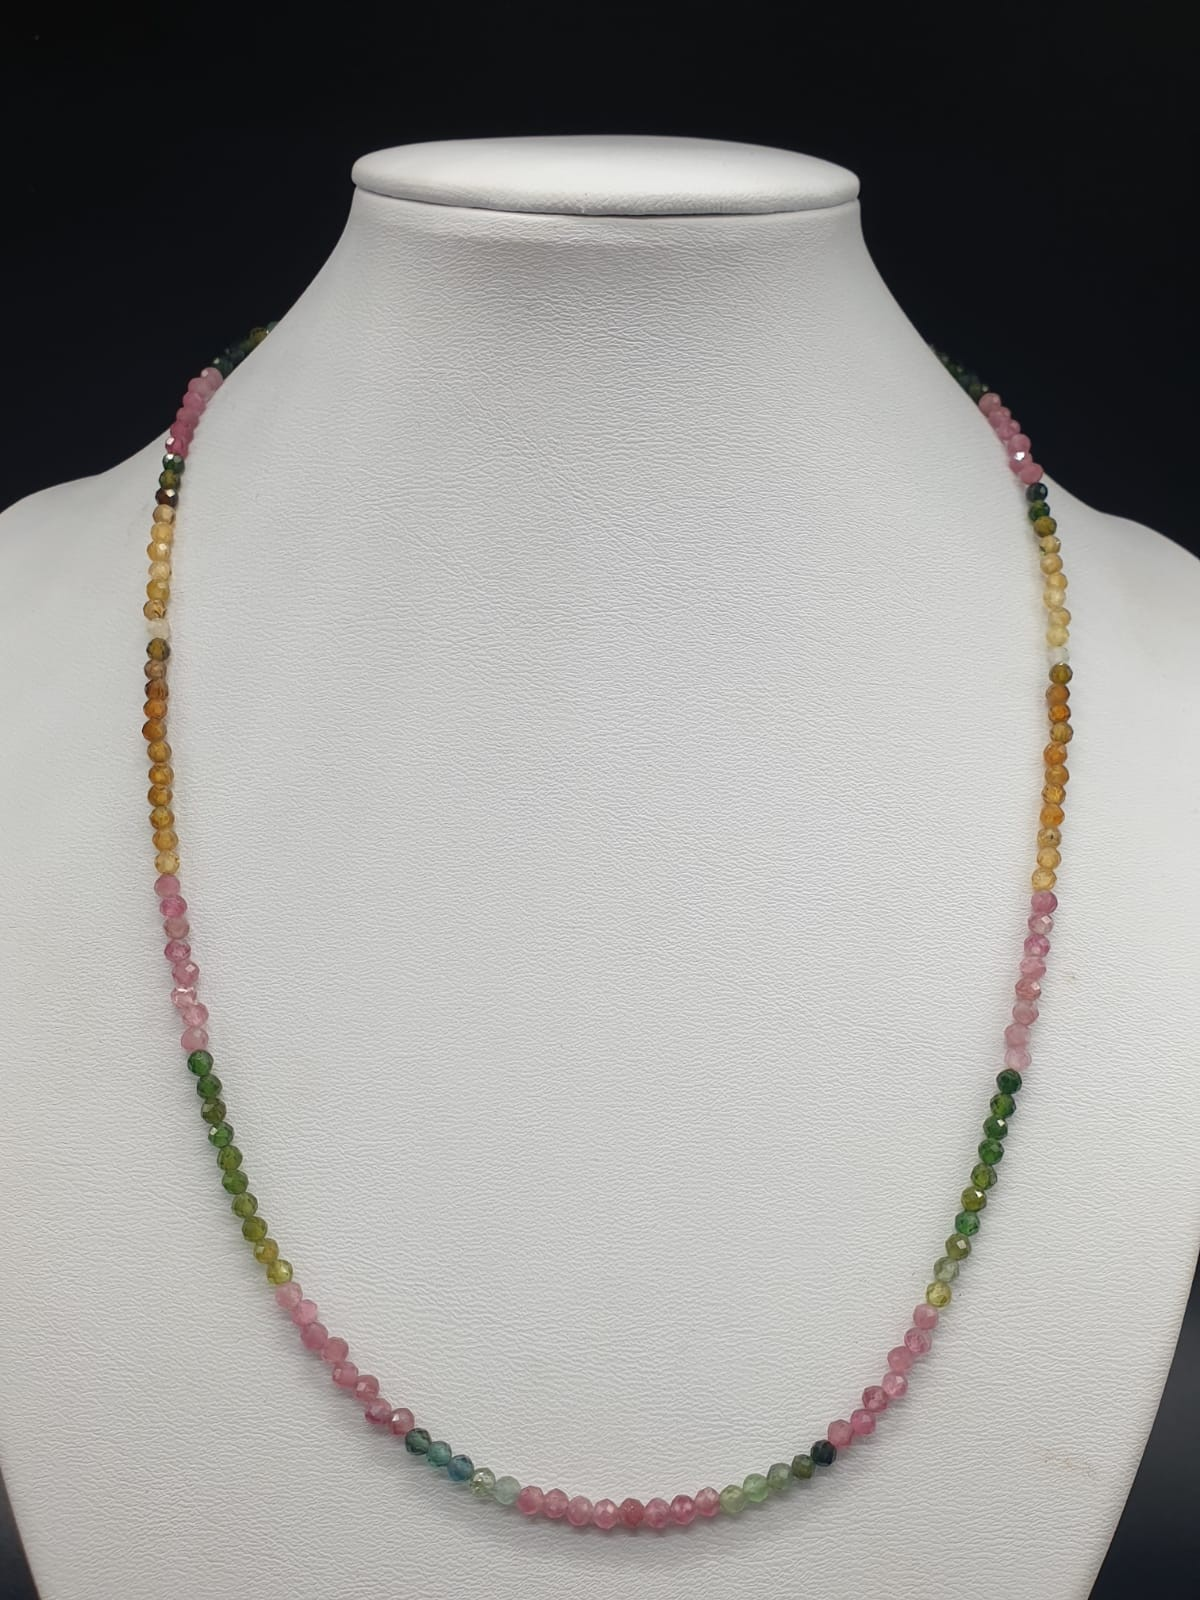 Single Row 3mm Tourmaline Necklace With Matching Tourmaline Drops Bracelet and 925 silver Clasp - Image 4 of 8